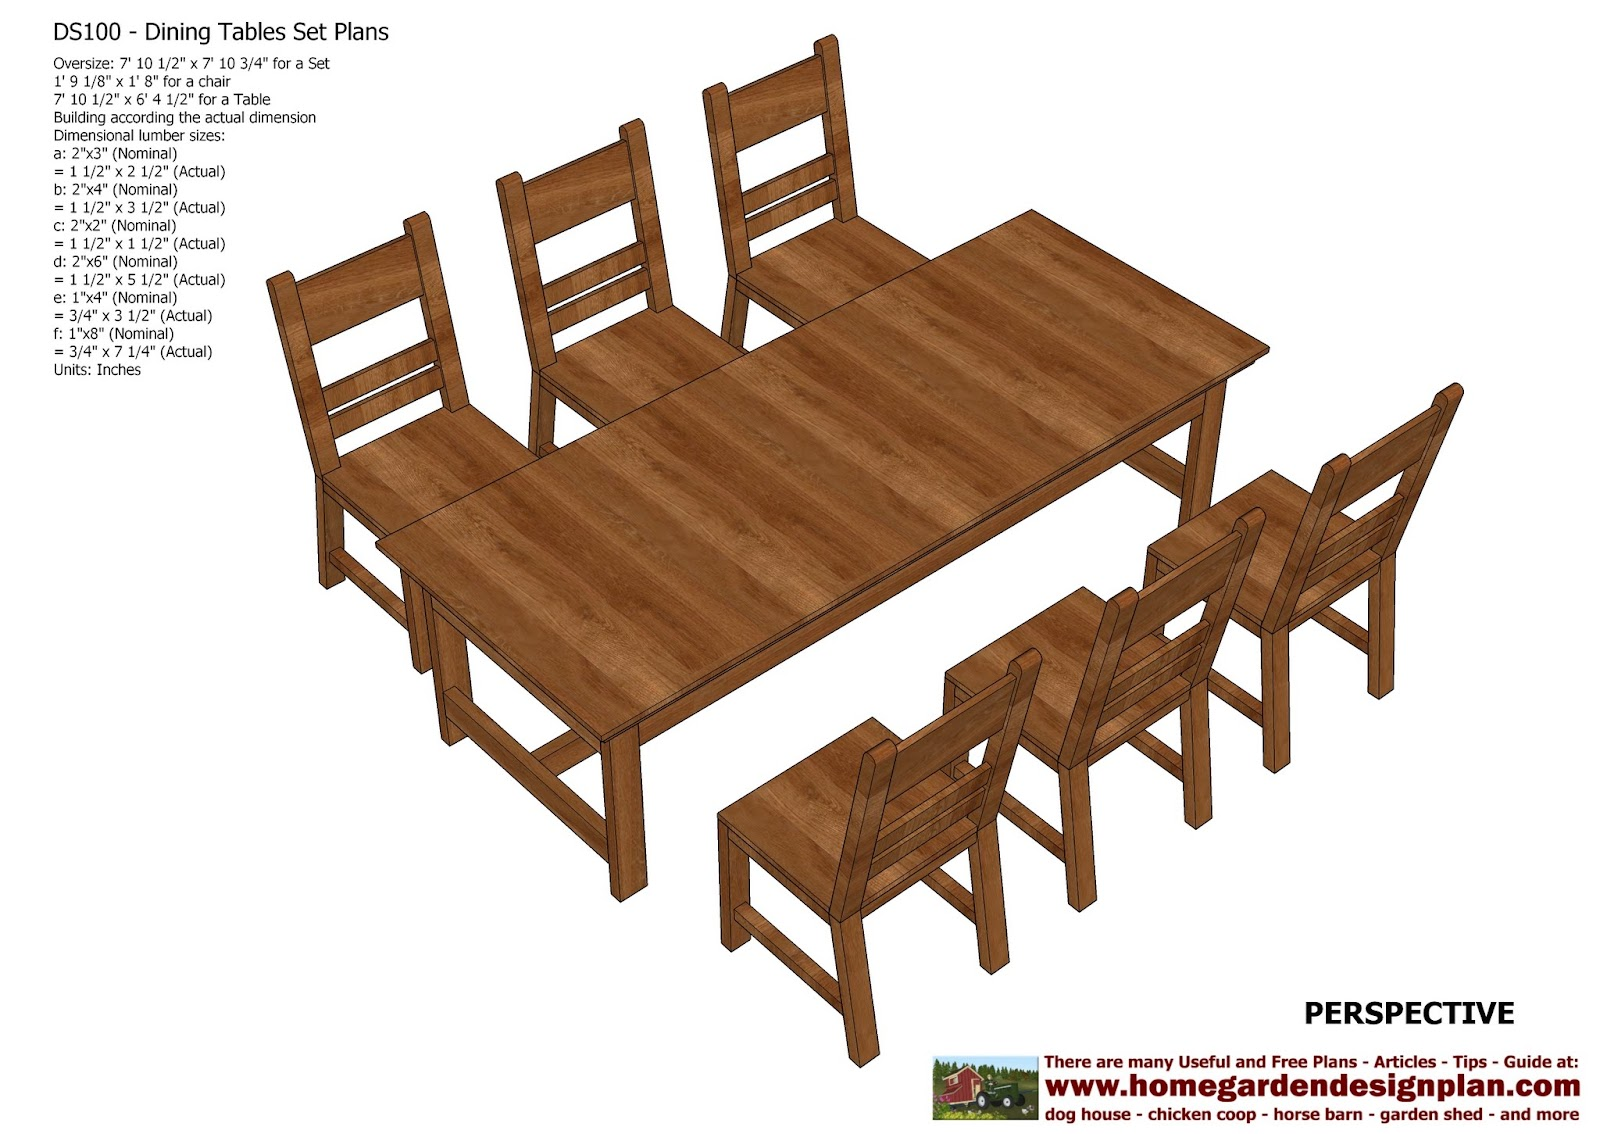 Original Dining Table Plans U2022 WoodArchivist